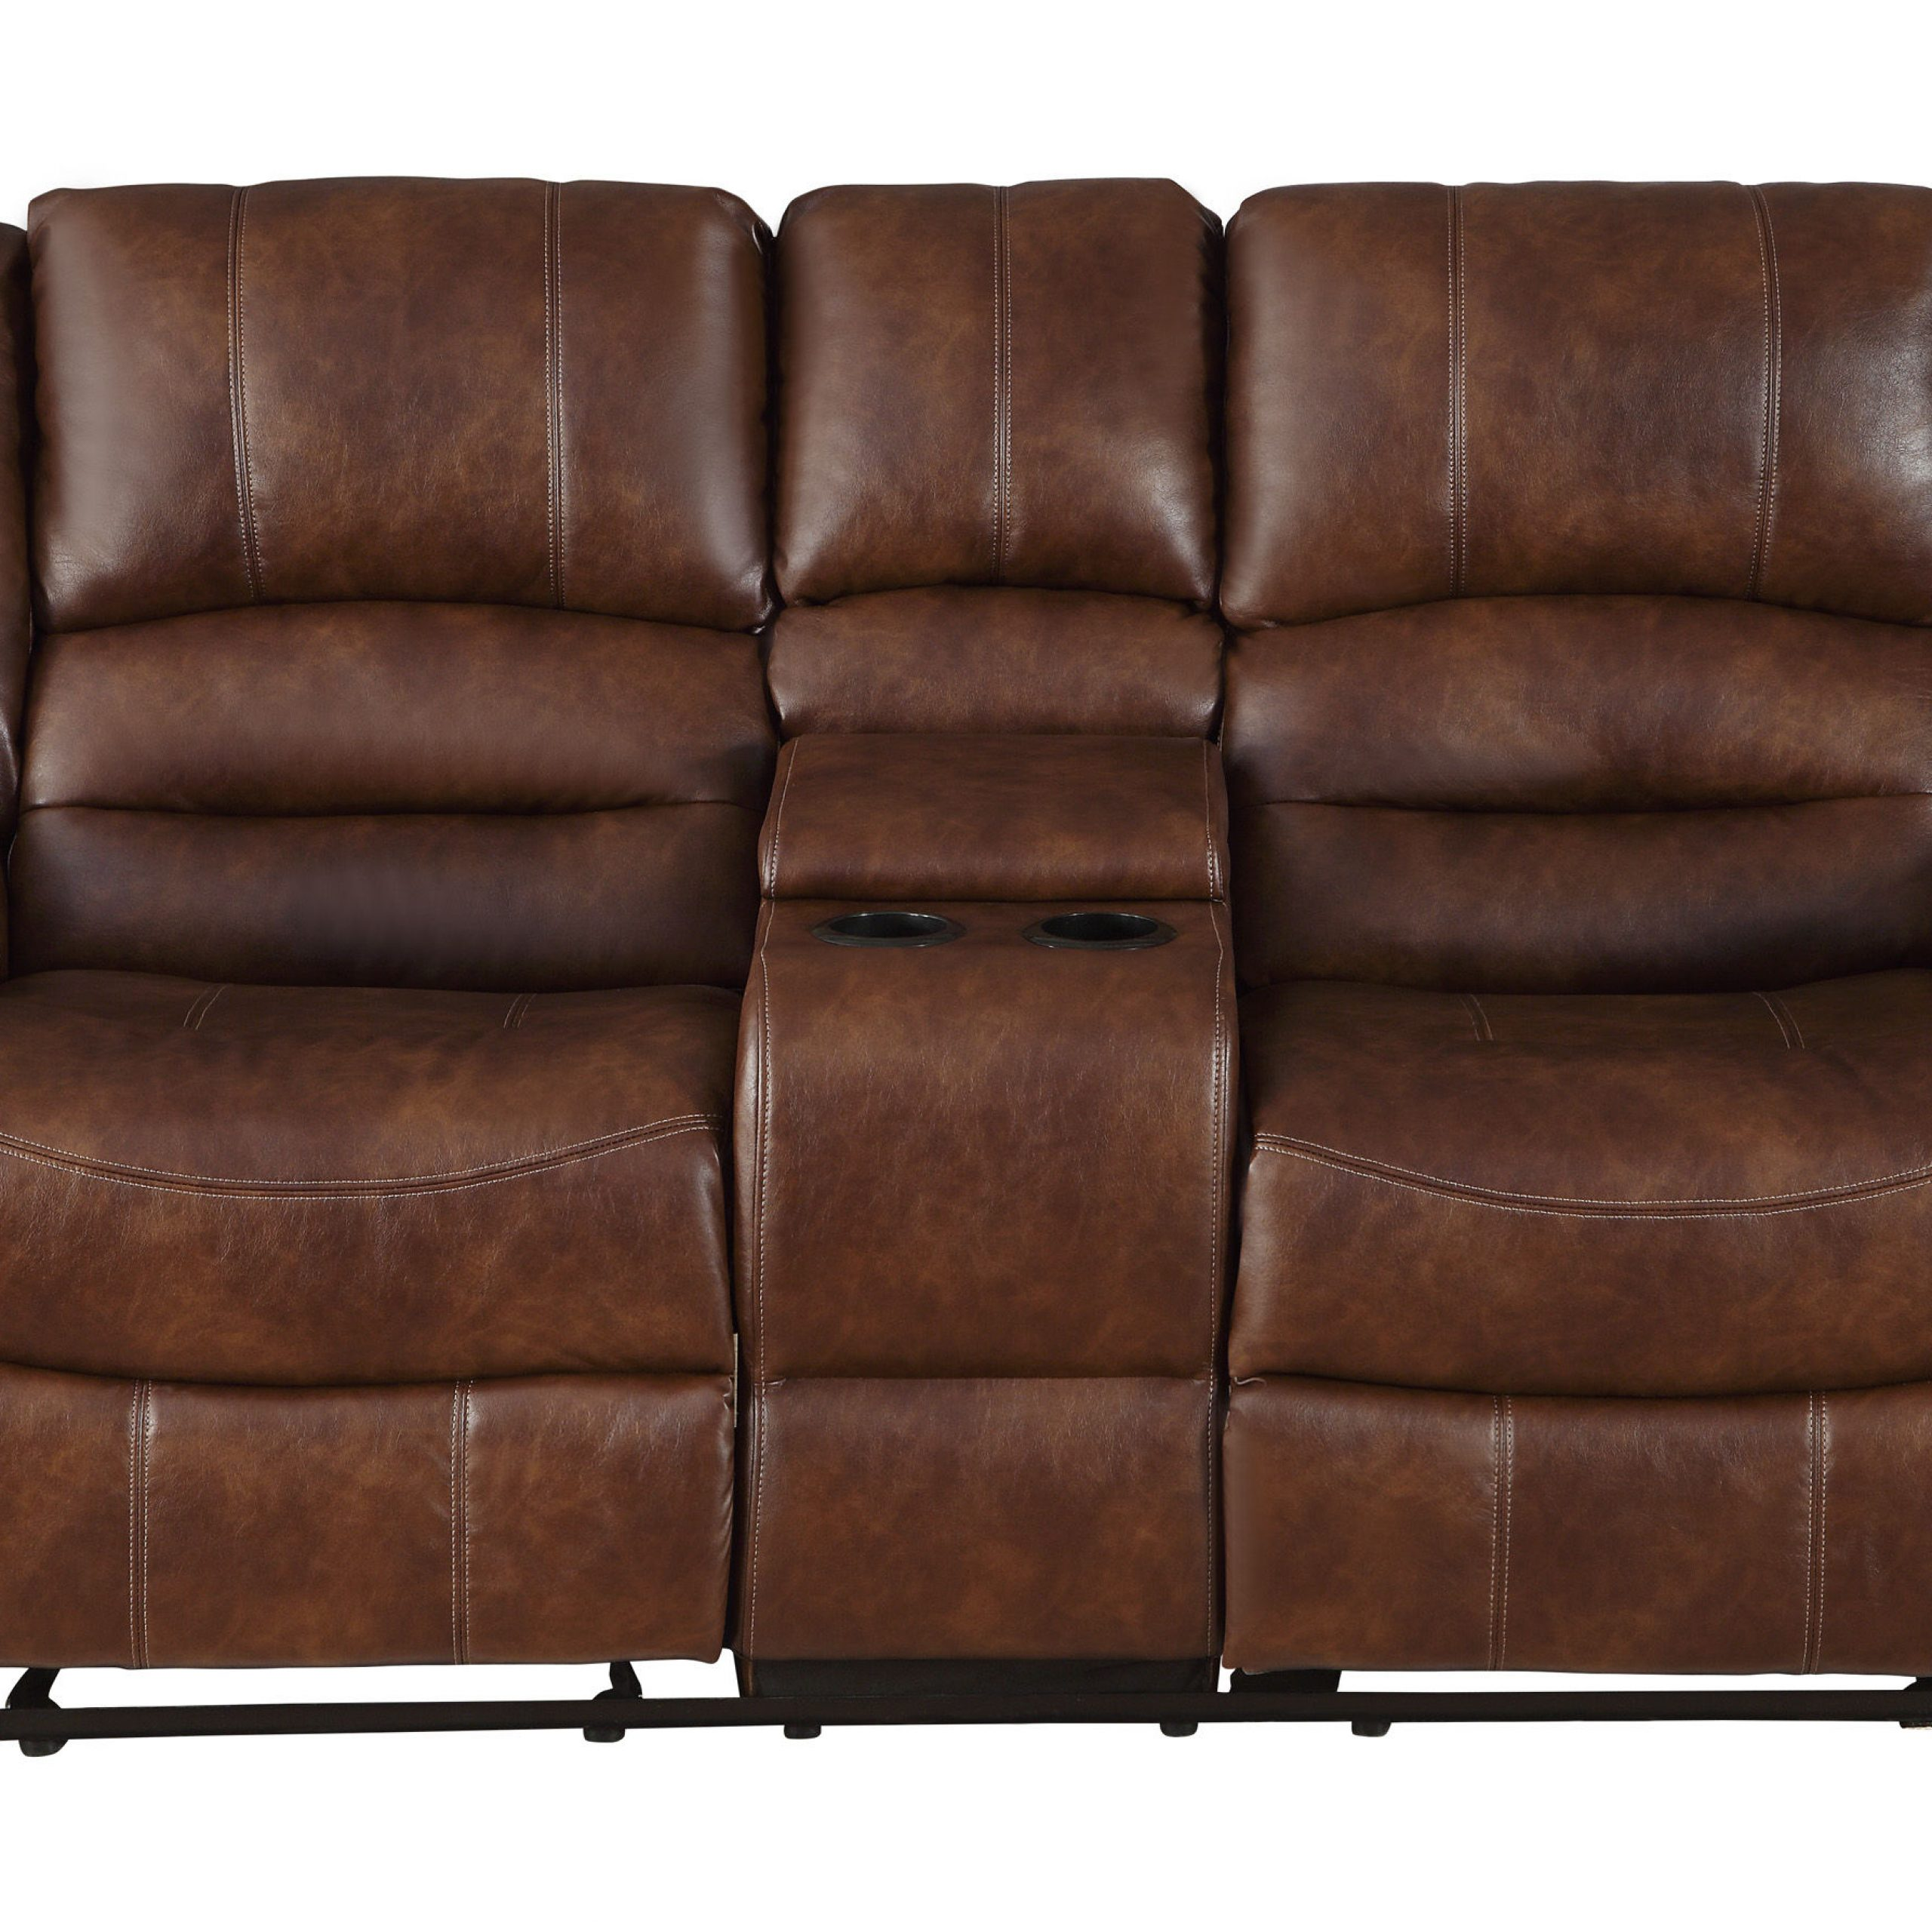 Most Recent Home Elegance Center Hill Saddle Double Glider Reclining With Regard To Double Glider Loveseats (View 22 of 30)